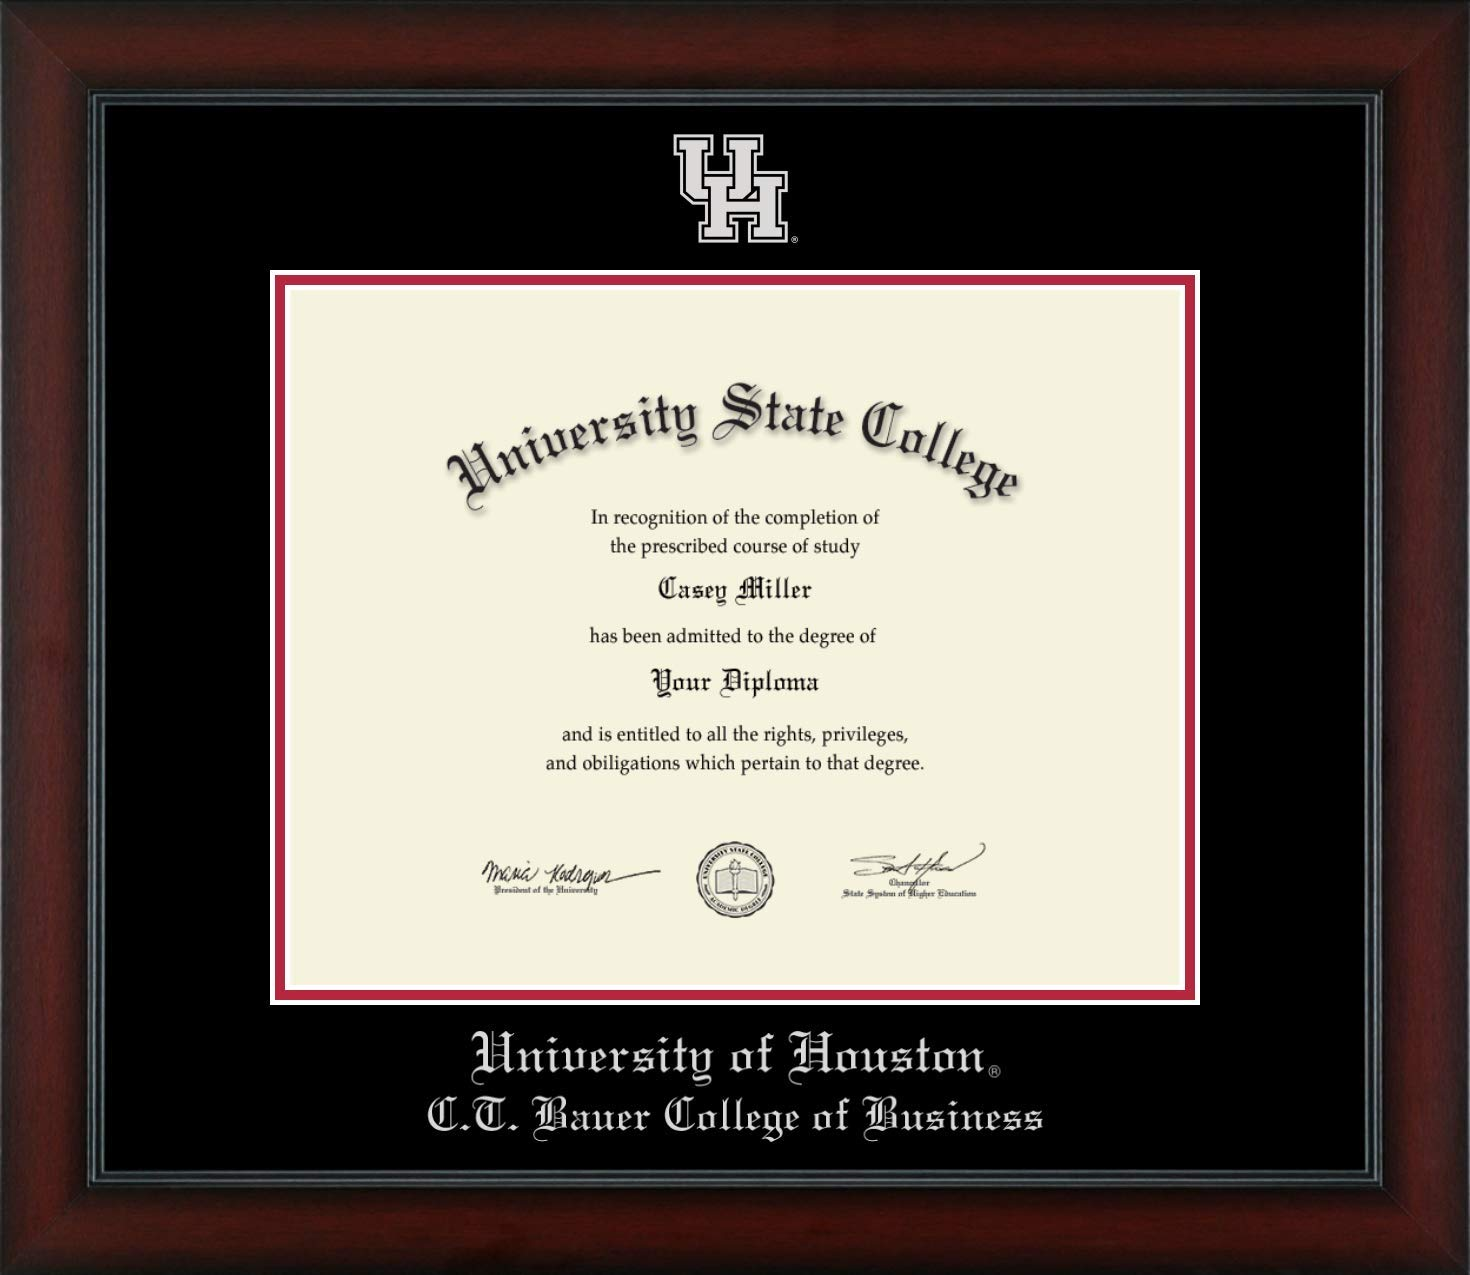 University of Houston C.T. Bauer College of Business - Officially Licensed - Silver Embossed Diploma Frame - Diploma Size 14'' x 11''